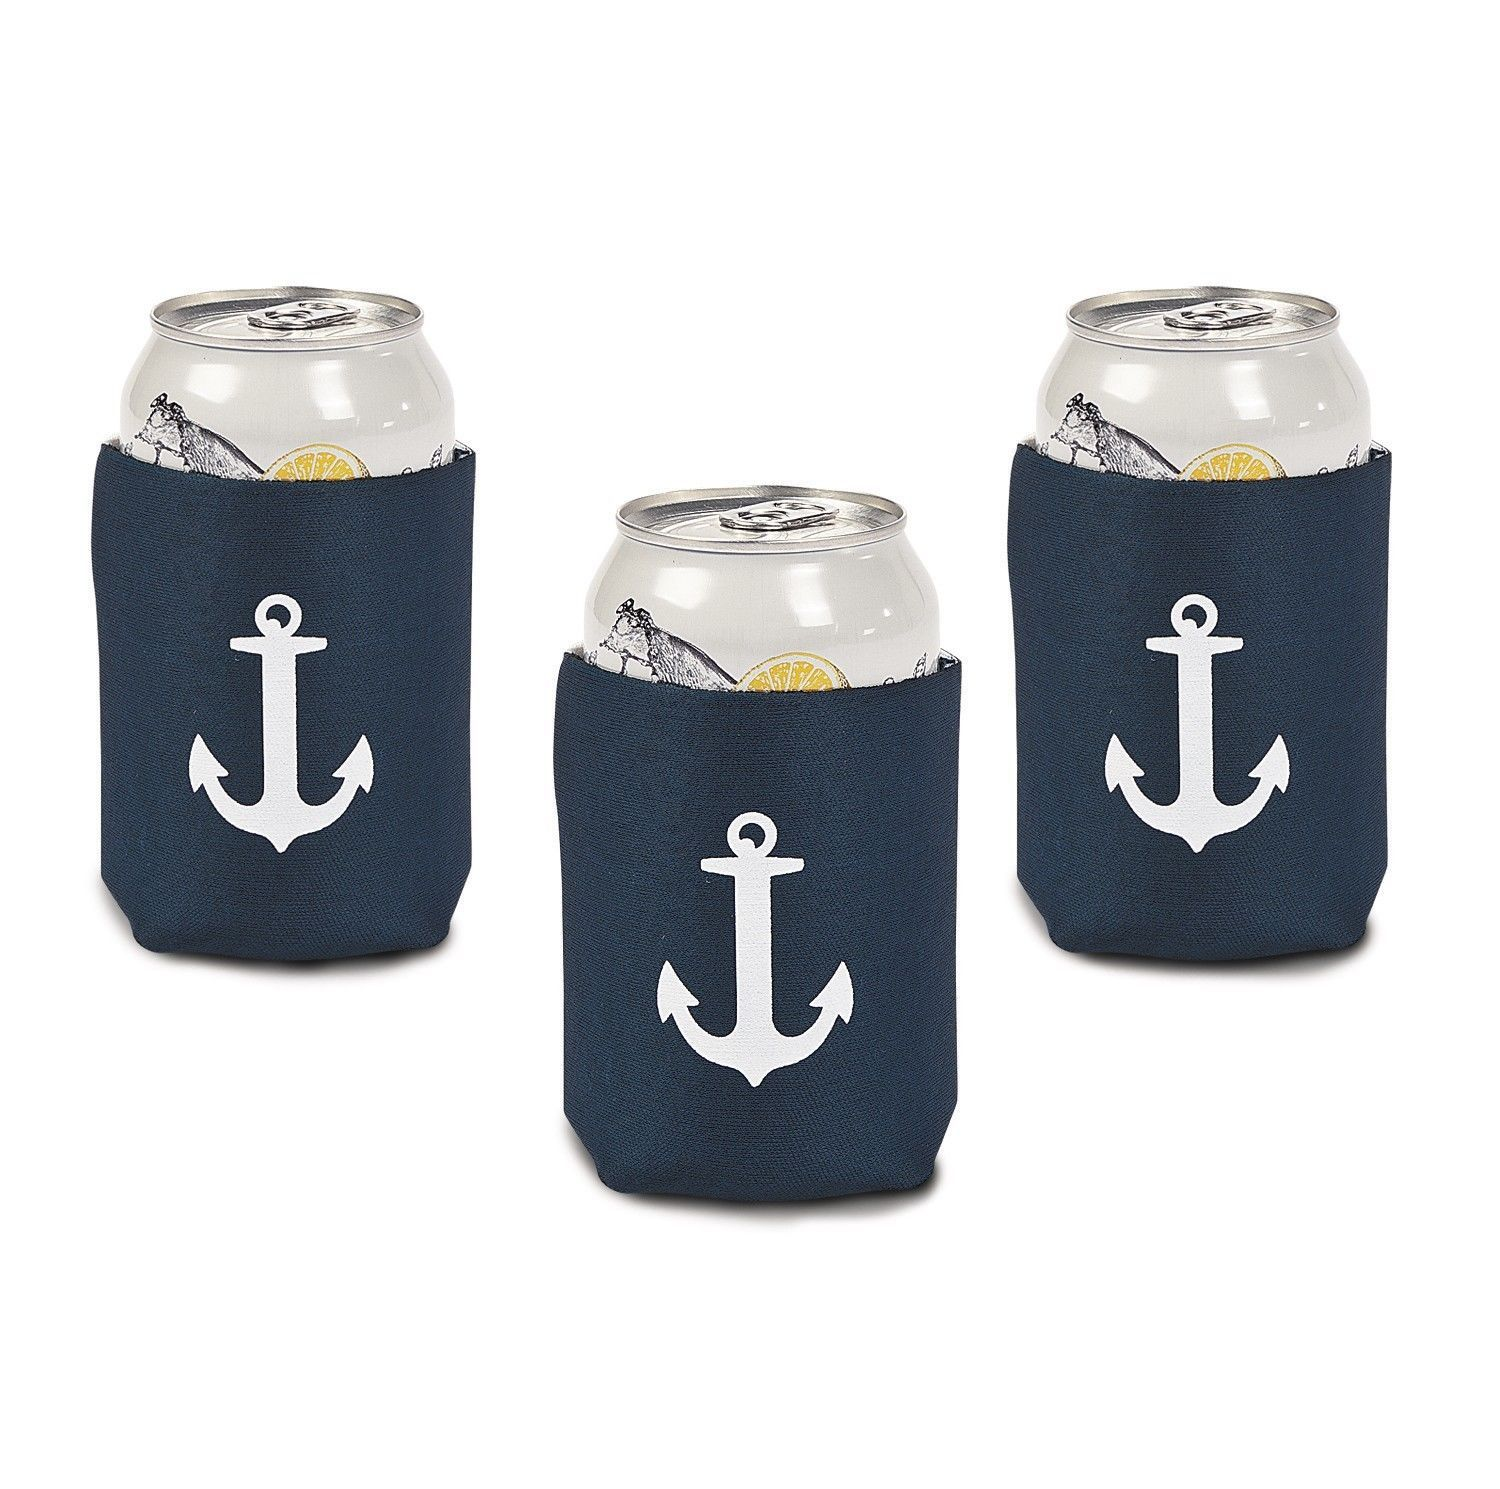 Wedding Favours: 10 Nautical Anchor Soda Can Insulator Wedding Favor ...